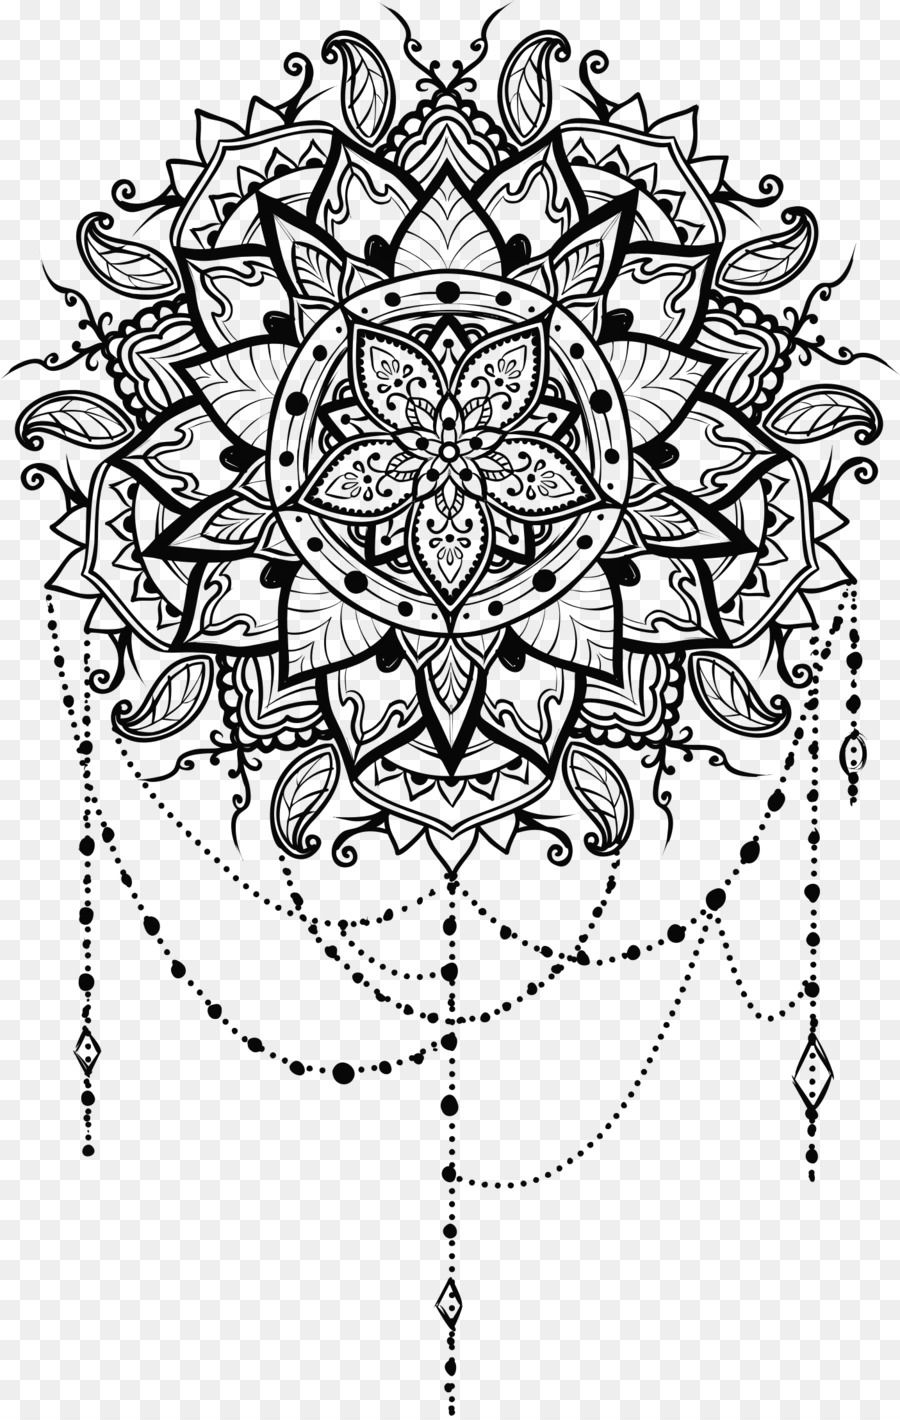 Line Art Mandala Drawing Ornament Om Mandala Drawing Mandala